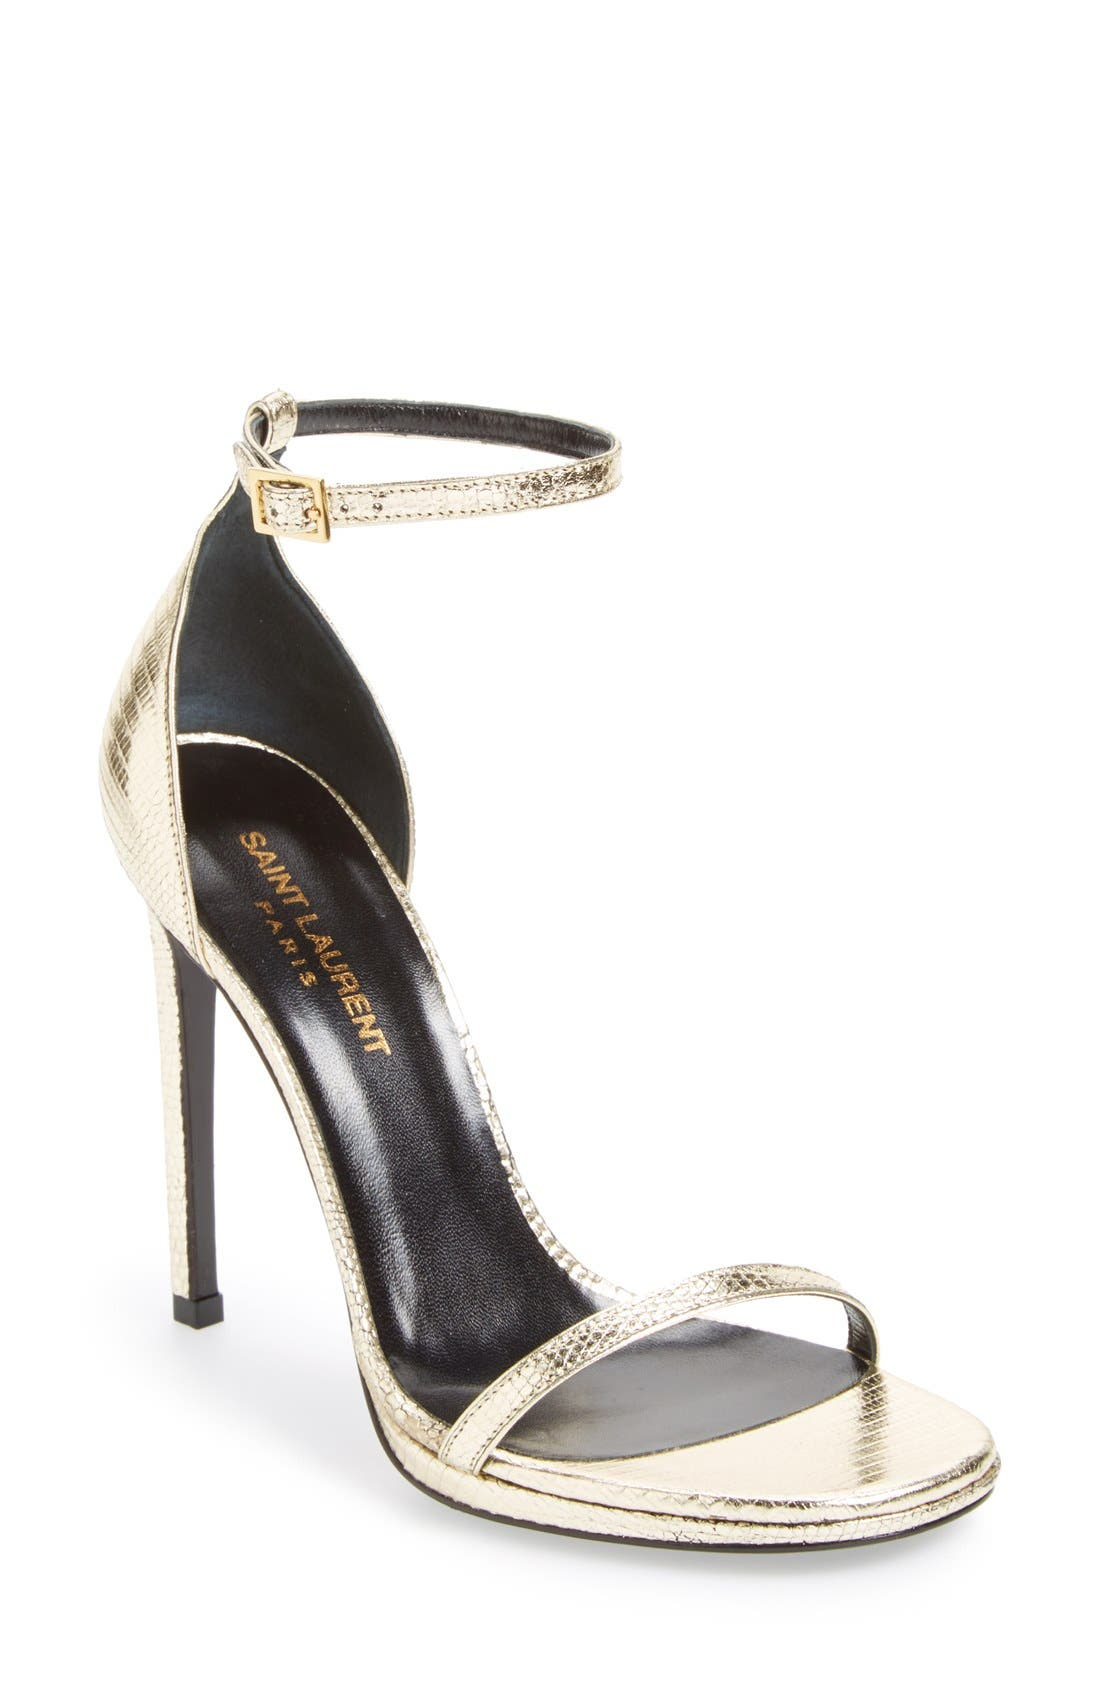 Alternate Image 1 Selected - Saint Laurent 'Jane' Metallic Lizard Embossed Ankle Strap Sandal (Women)